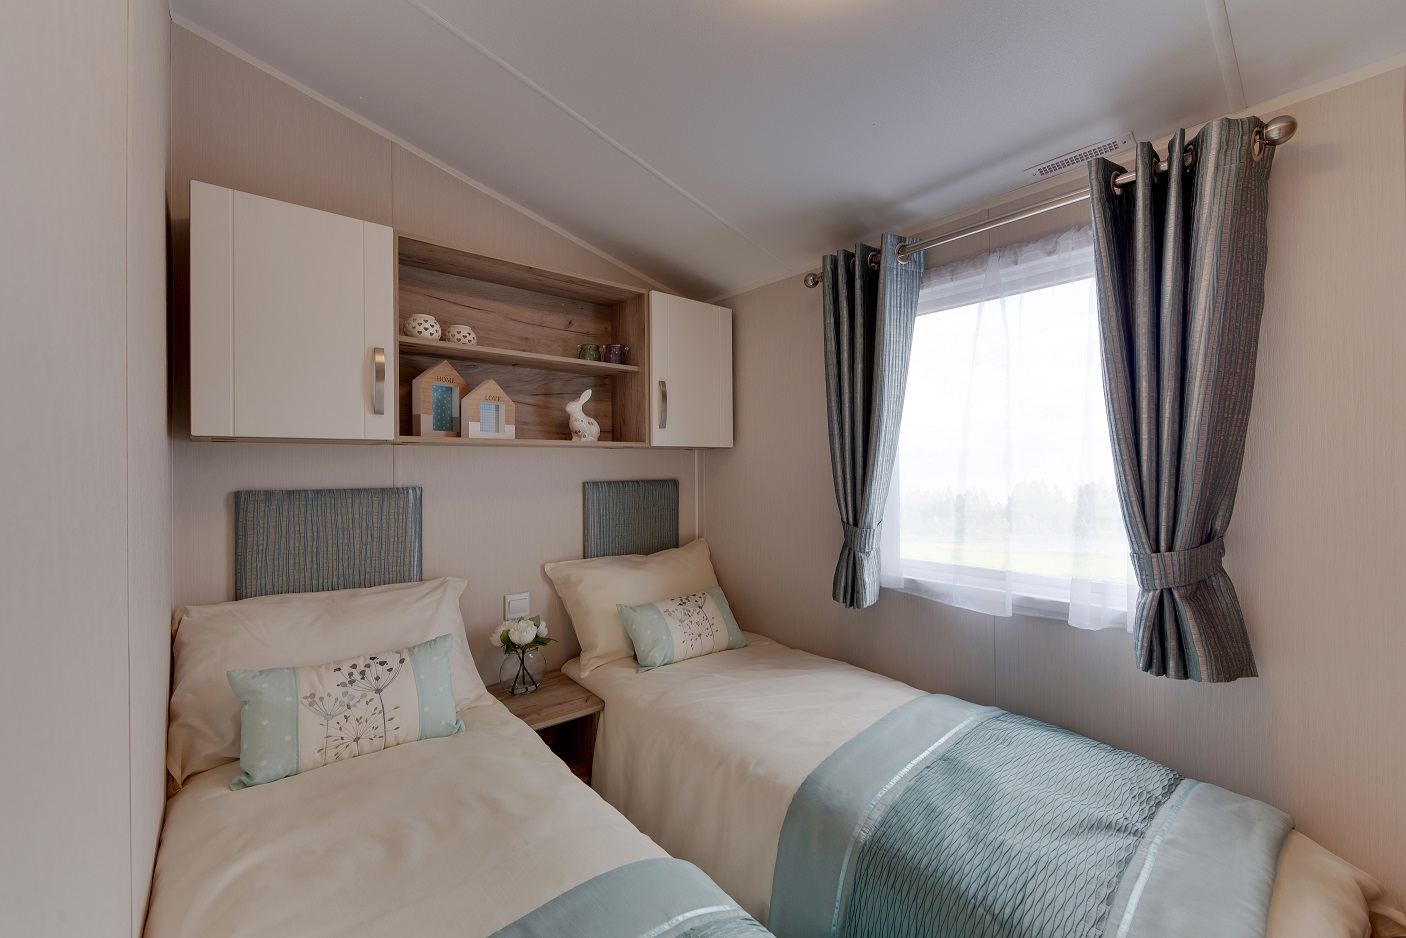 Willerby Skye: Static Caravans and Holiday Homes for Sale on Caravan Parks, South Shields, Durham and Weardale Image 5